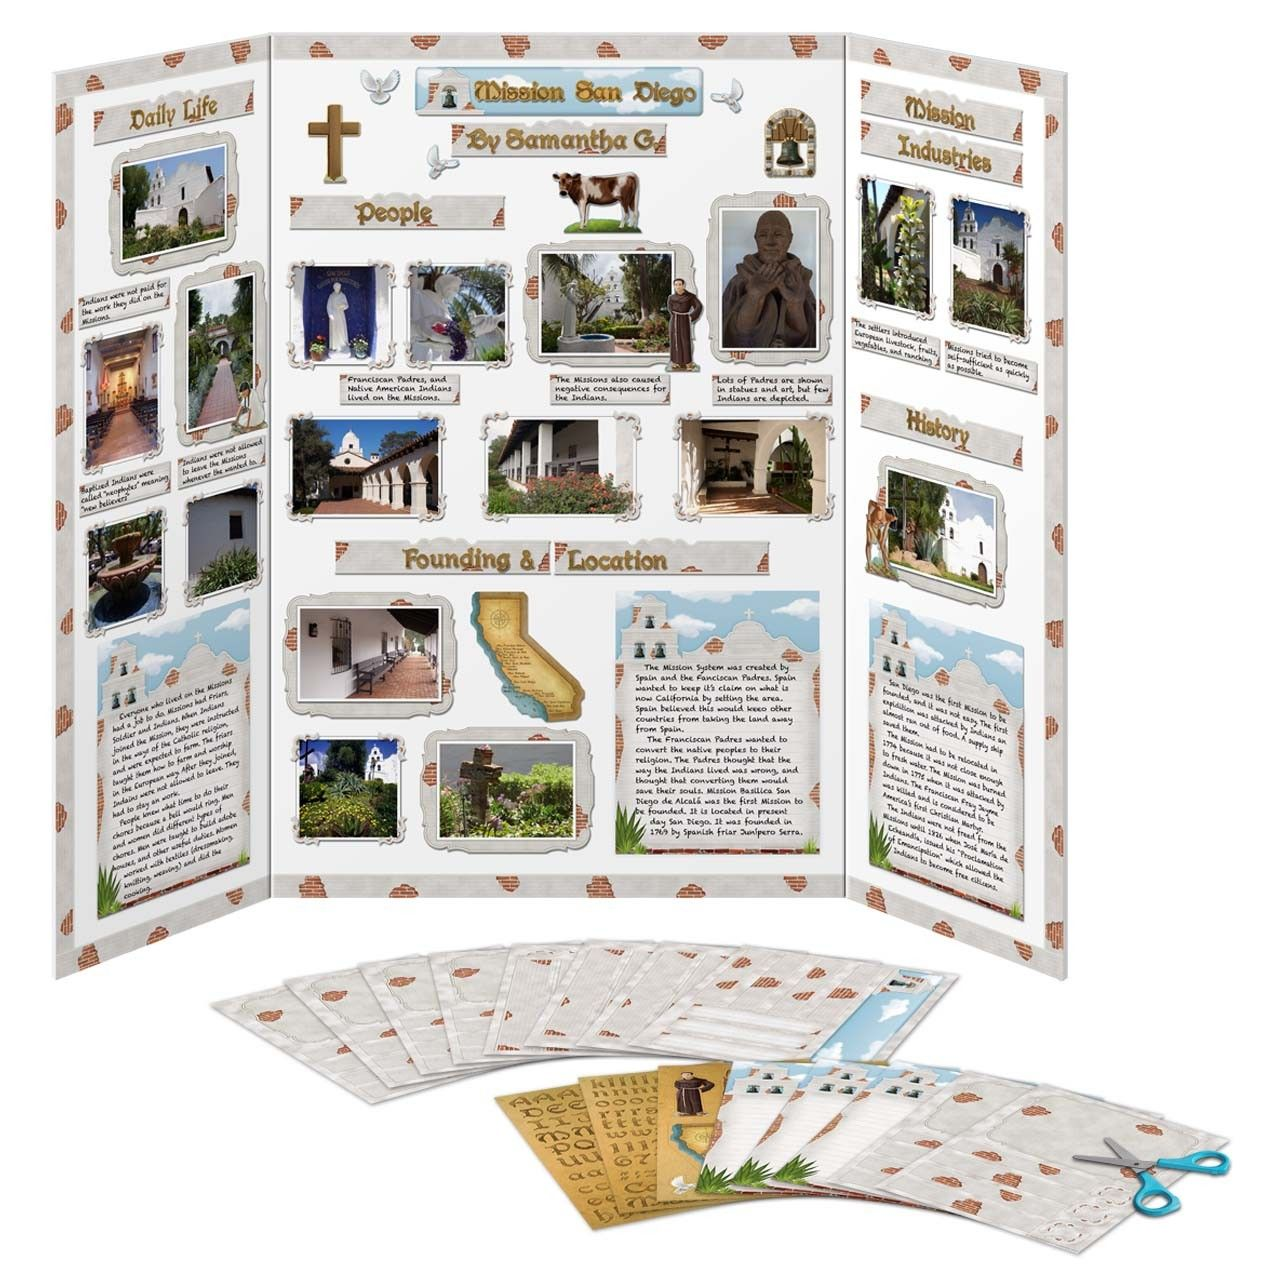 California Missions Project Kit